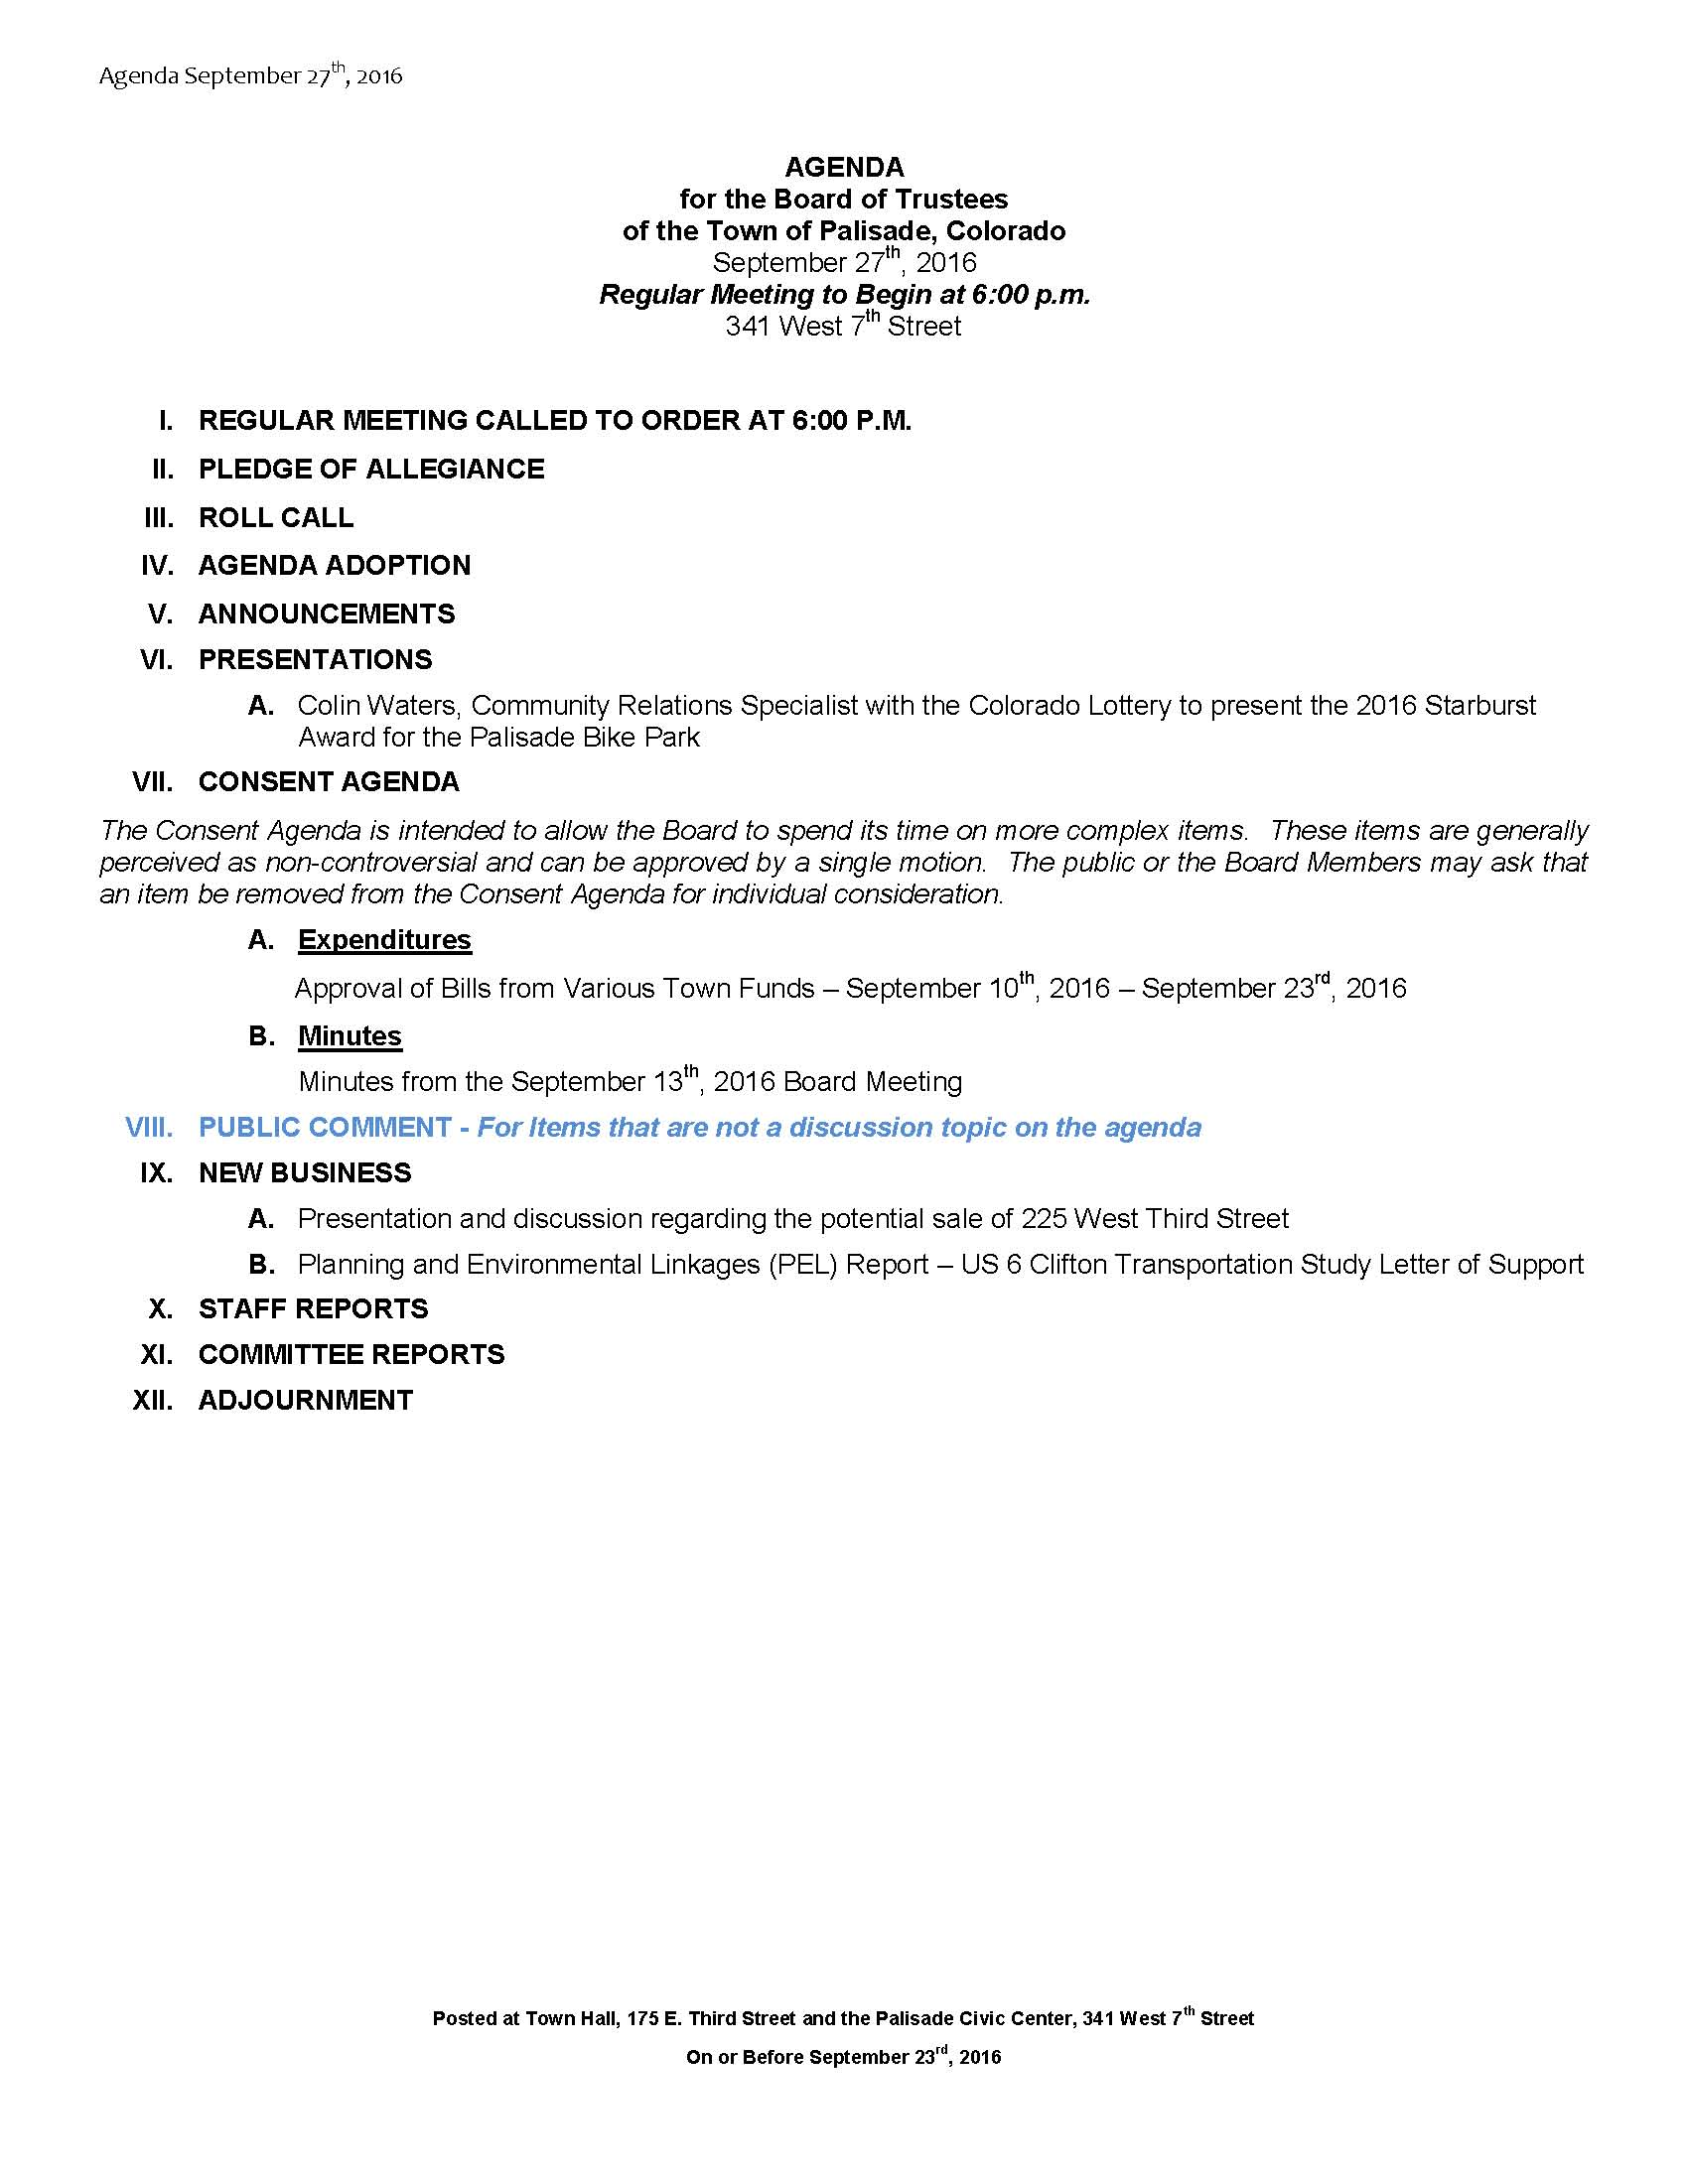 September 27th 2016 Board Meeting Agenda